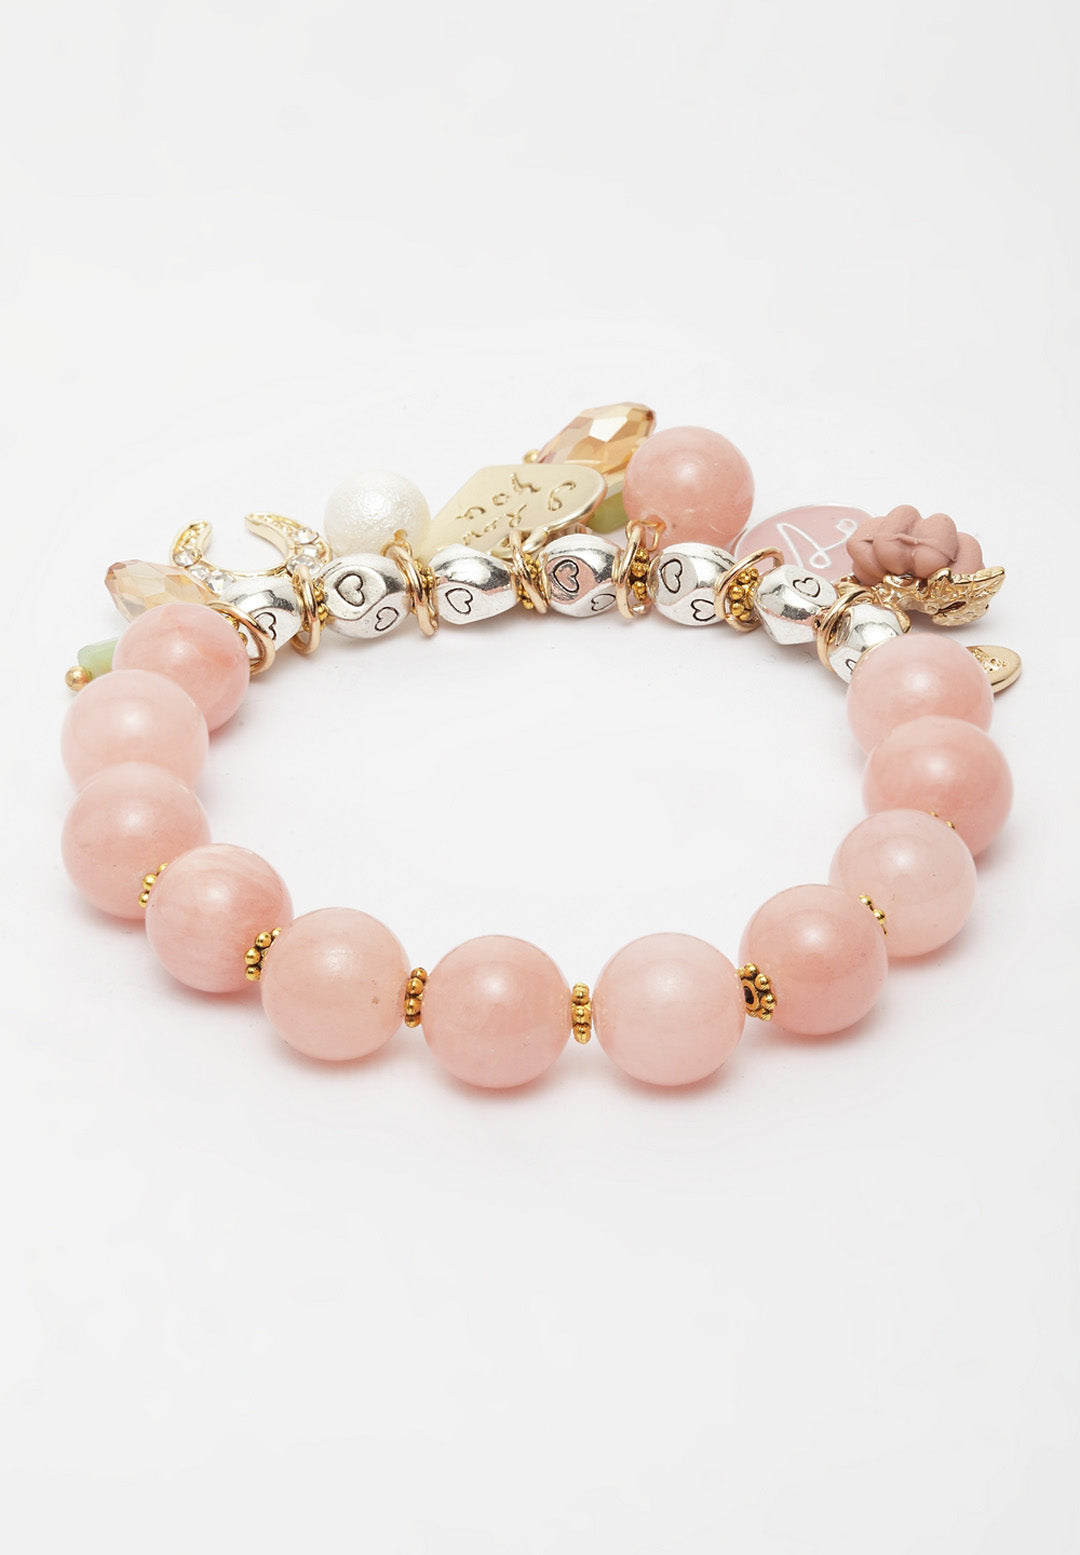 Avant-Garde Paris Boho Pearl Bracelets With Charms